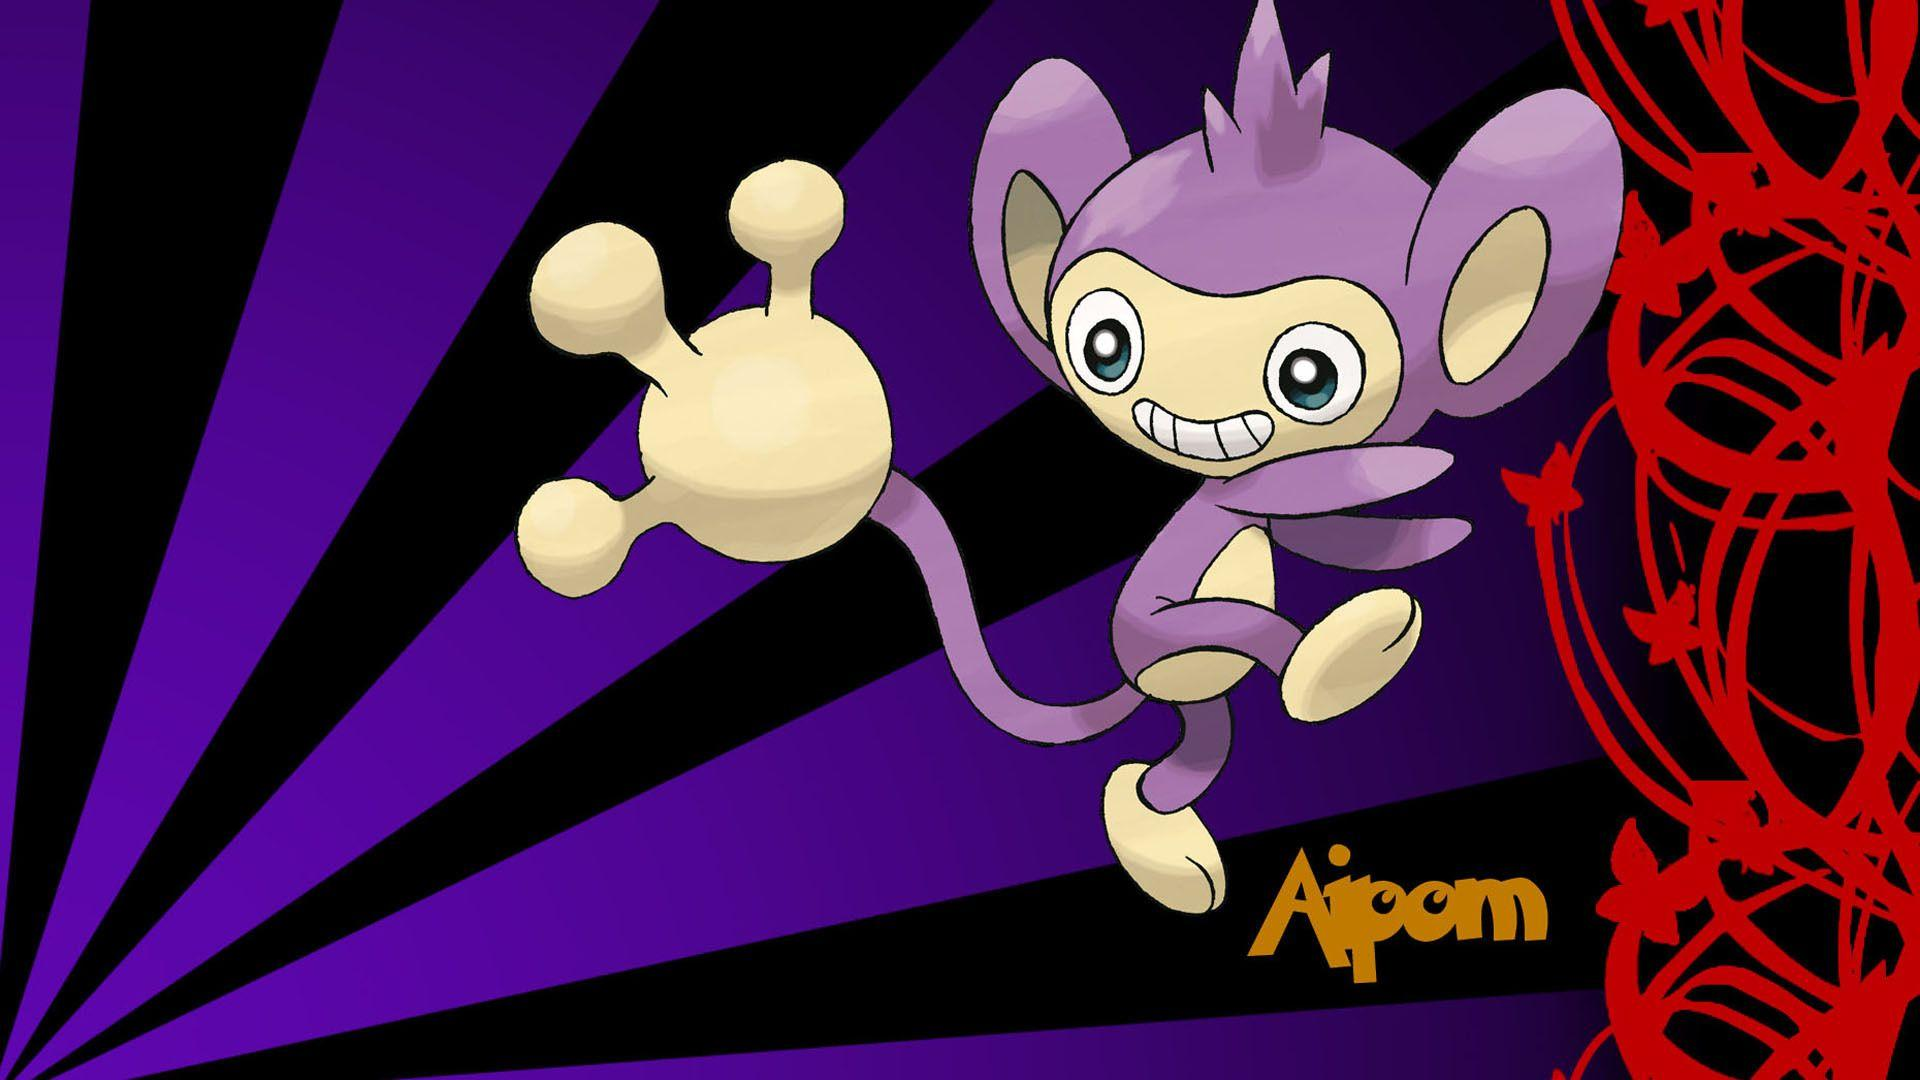 Aipom Wallpapers Images Photos Pictures Backgrounds